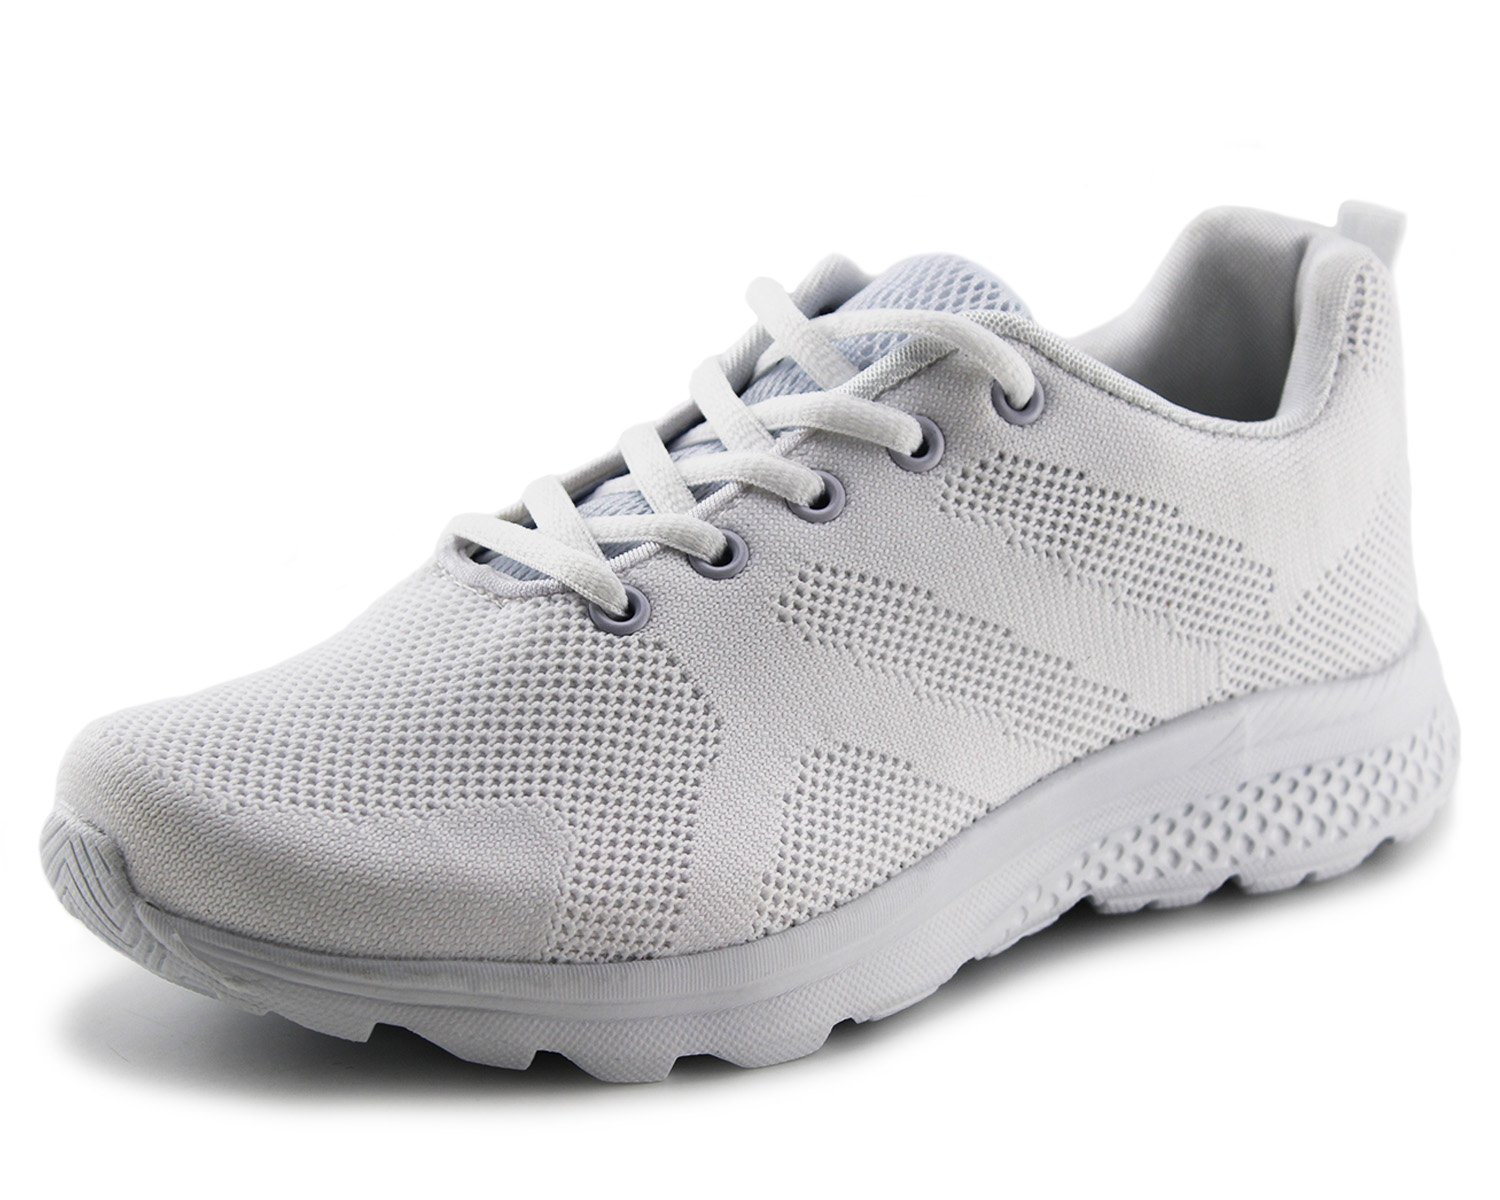 Jabasic Women's Breathable Knit Sports Running Shoes Casual Walking Sneaker